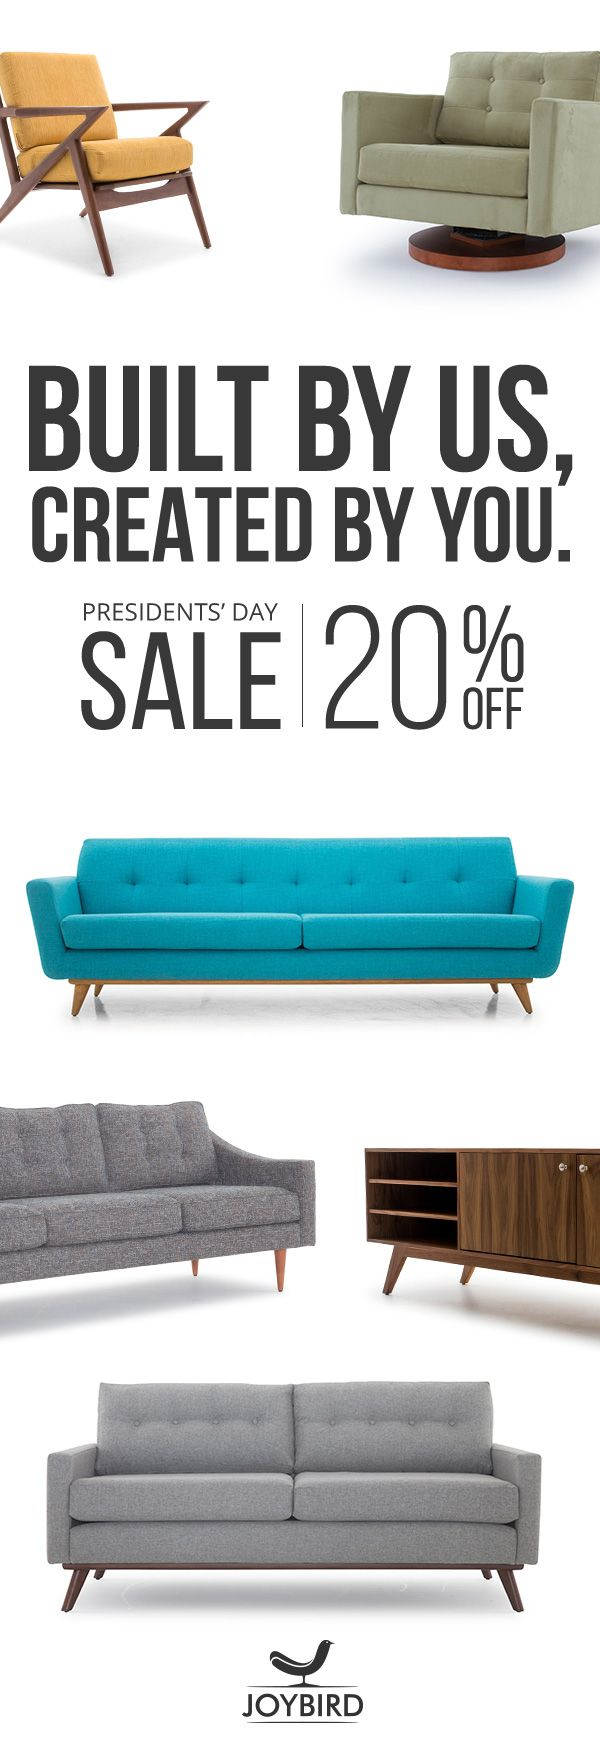 Why be generic when you can stand out with Mid Century Modern furniture from Joybird? Take 20% off sofas, wood items, and decor right now during our Presidents' Day Sale! All Joybird furniture comes with FREE in-home delivery & lifetime warranty!